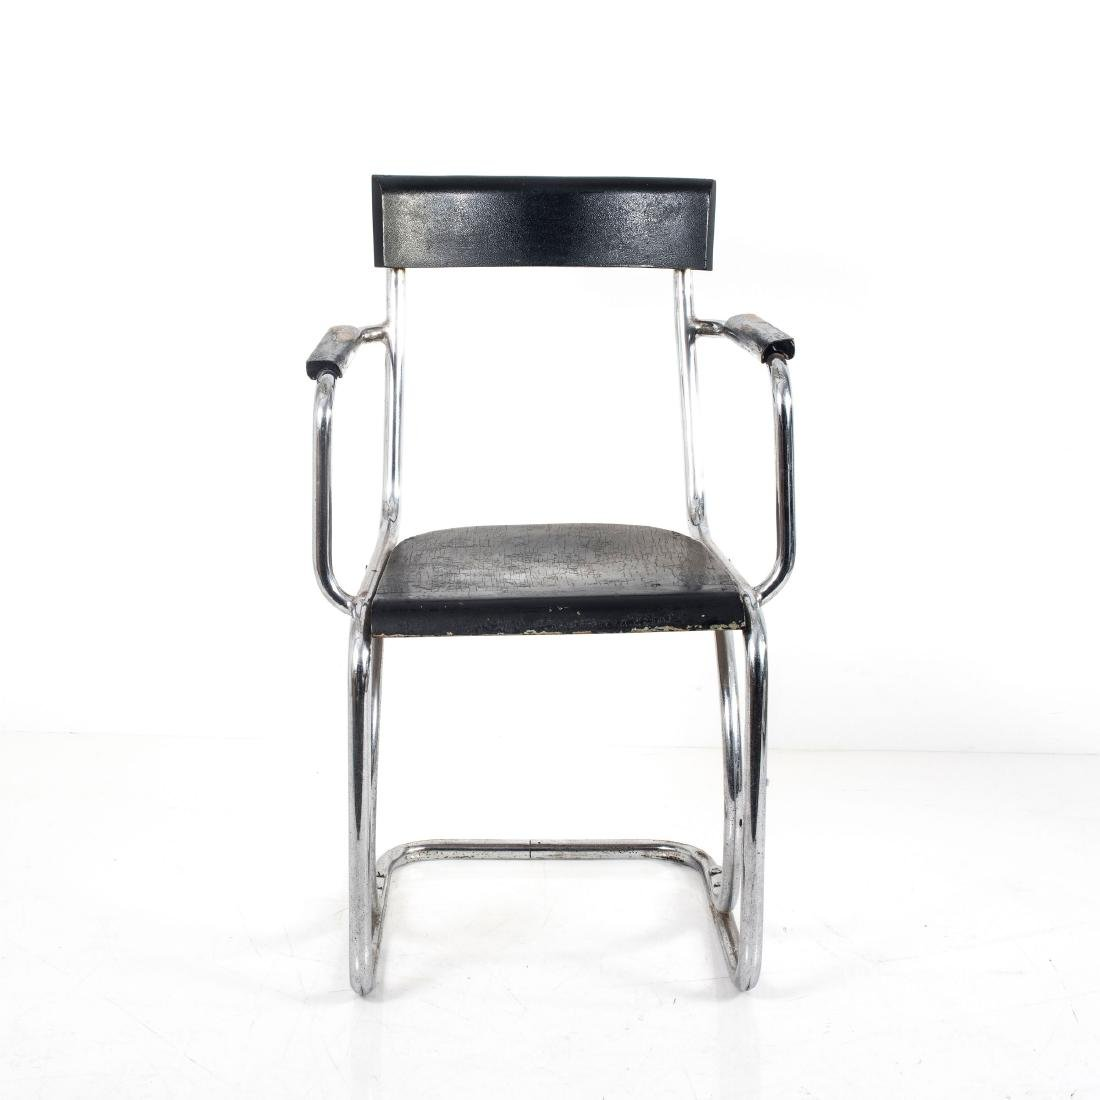 Cantilever chair, 1930/31 - 8